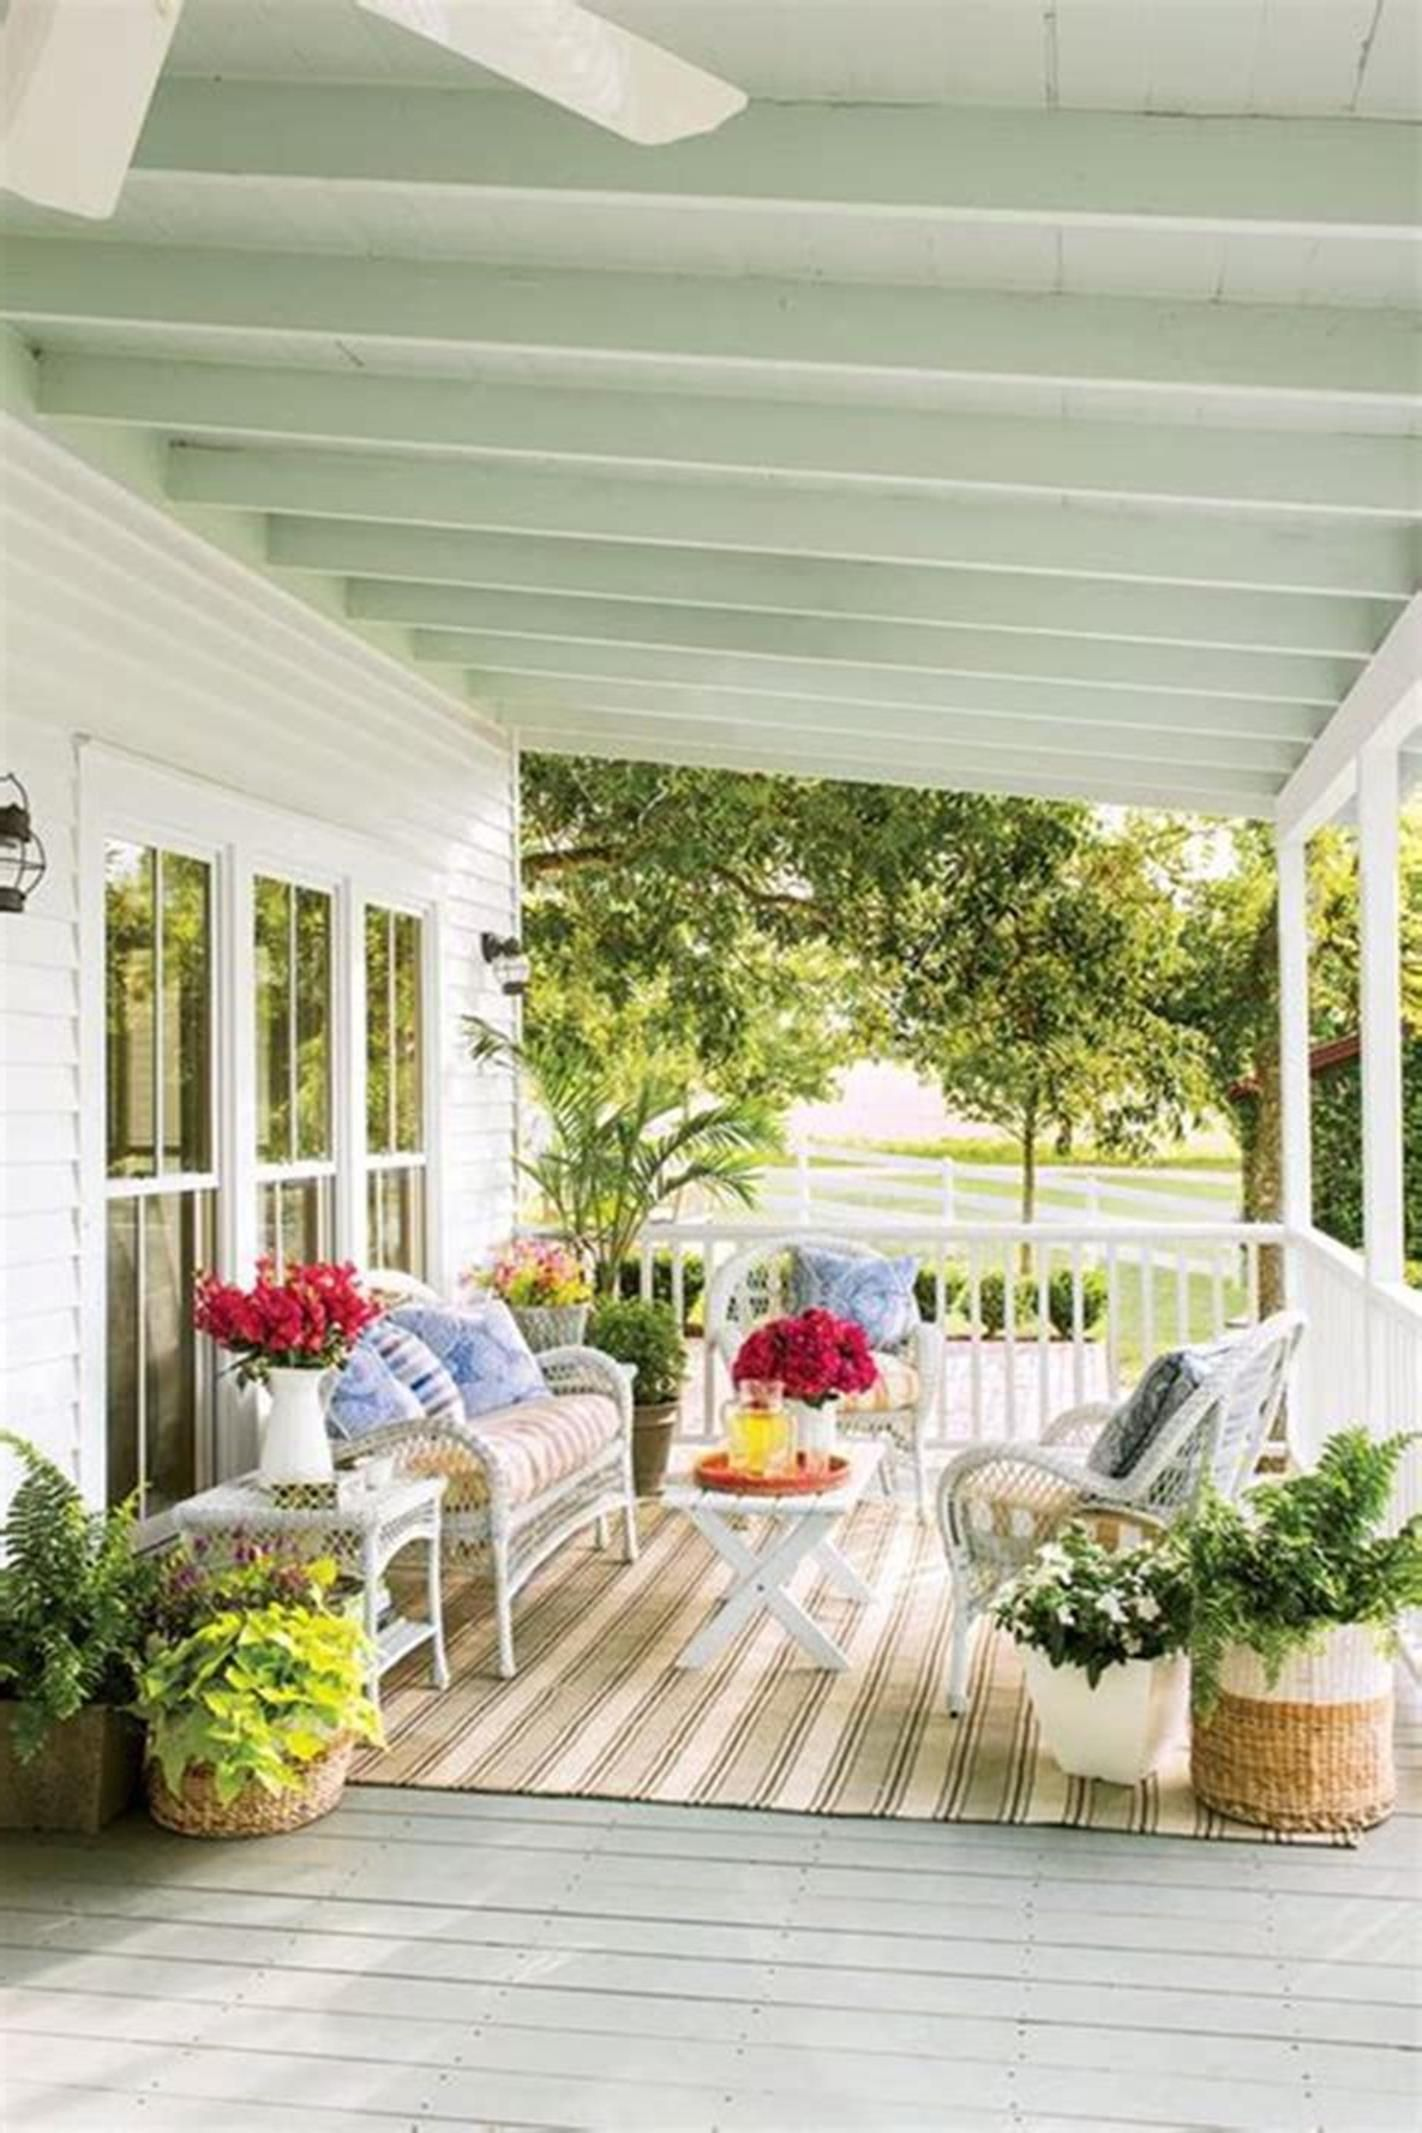 30 Perfect Screened Porch Design And Decorating Ideas For 2019 Screened Porch Designs House With Porch Diy Porch